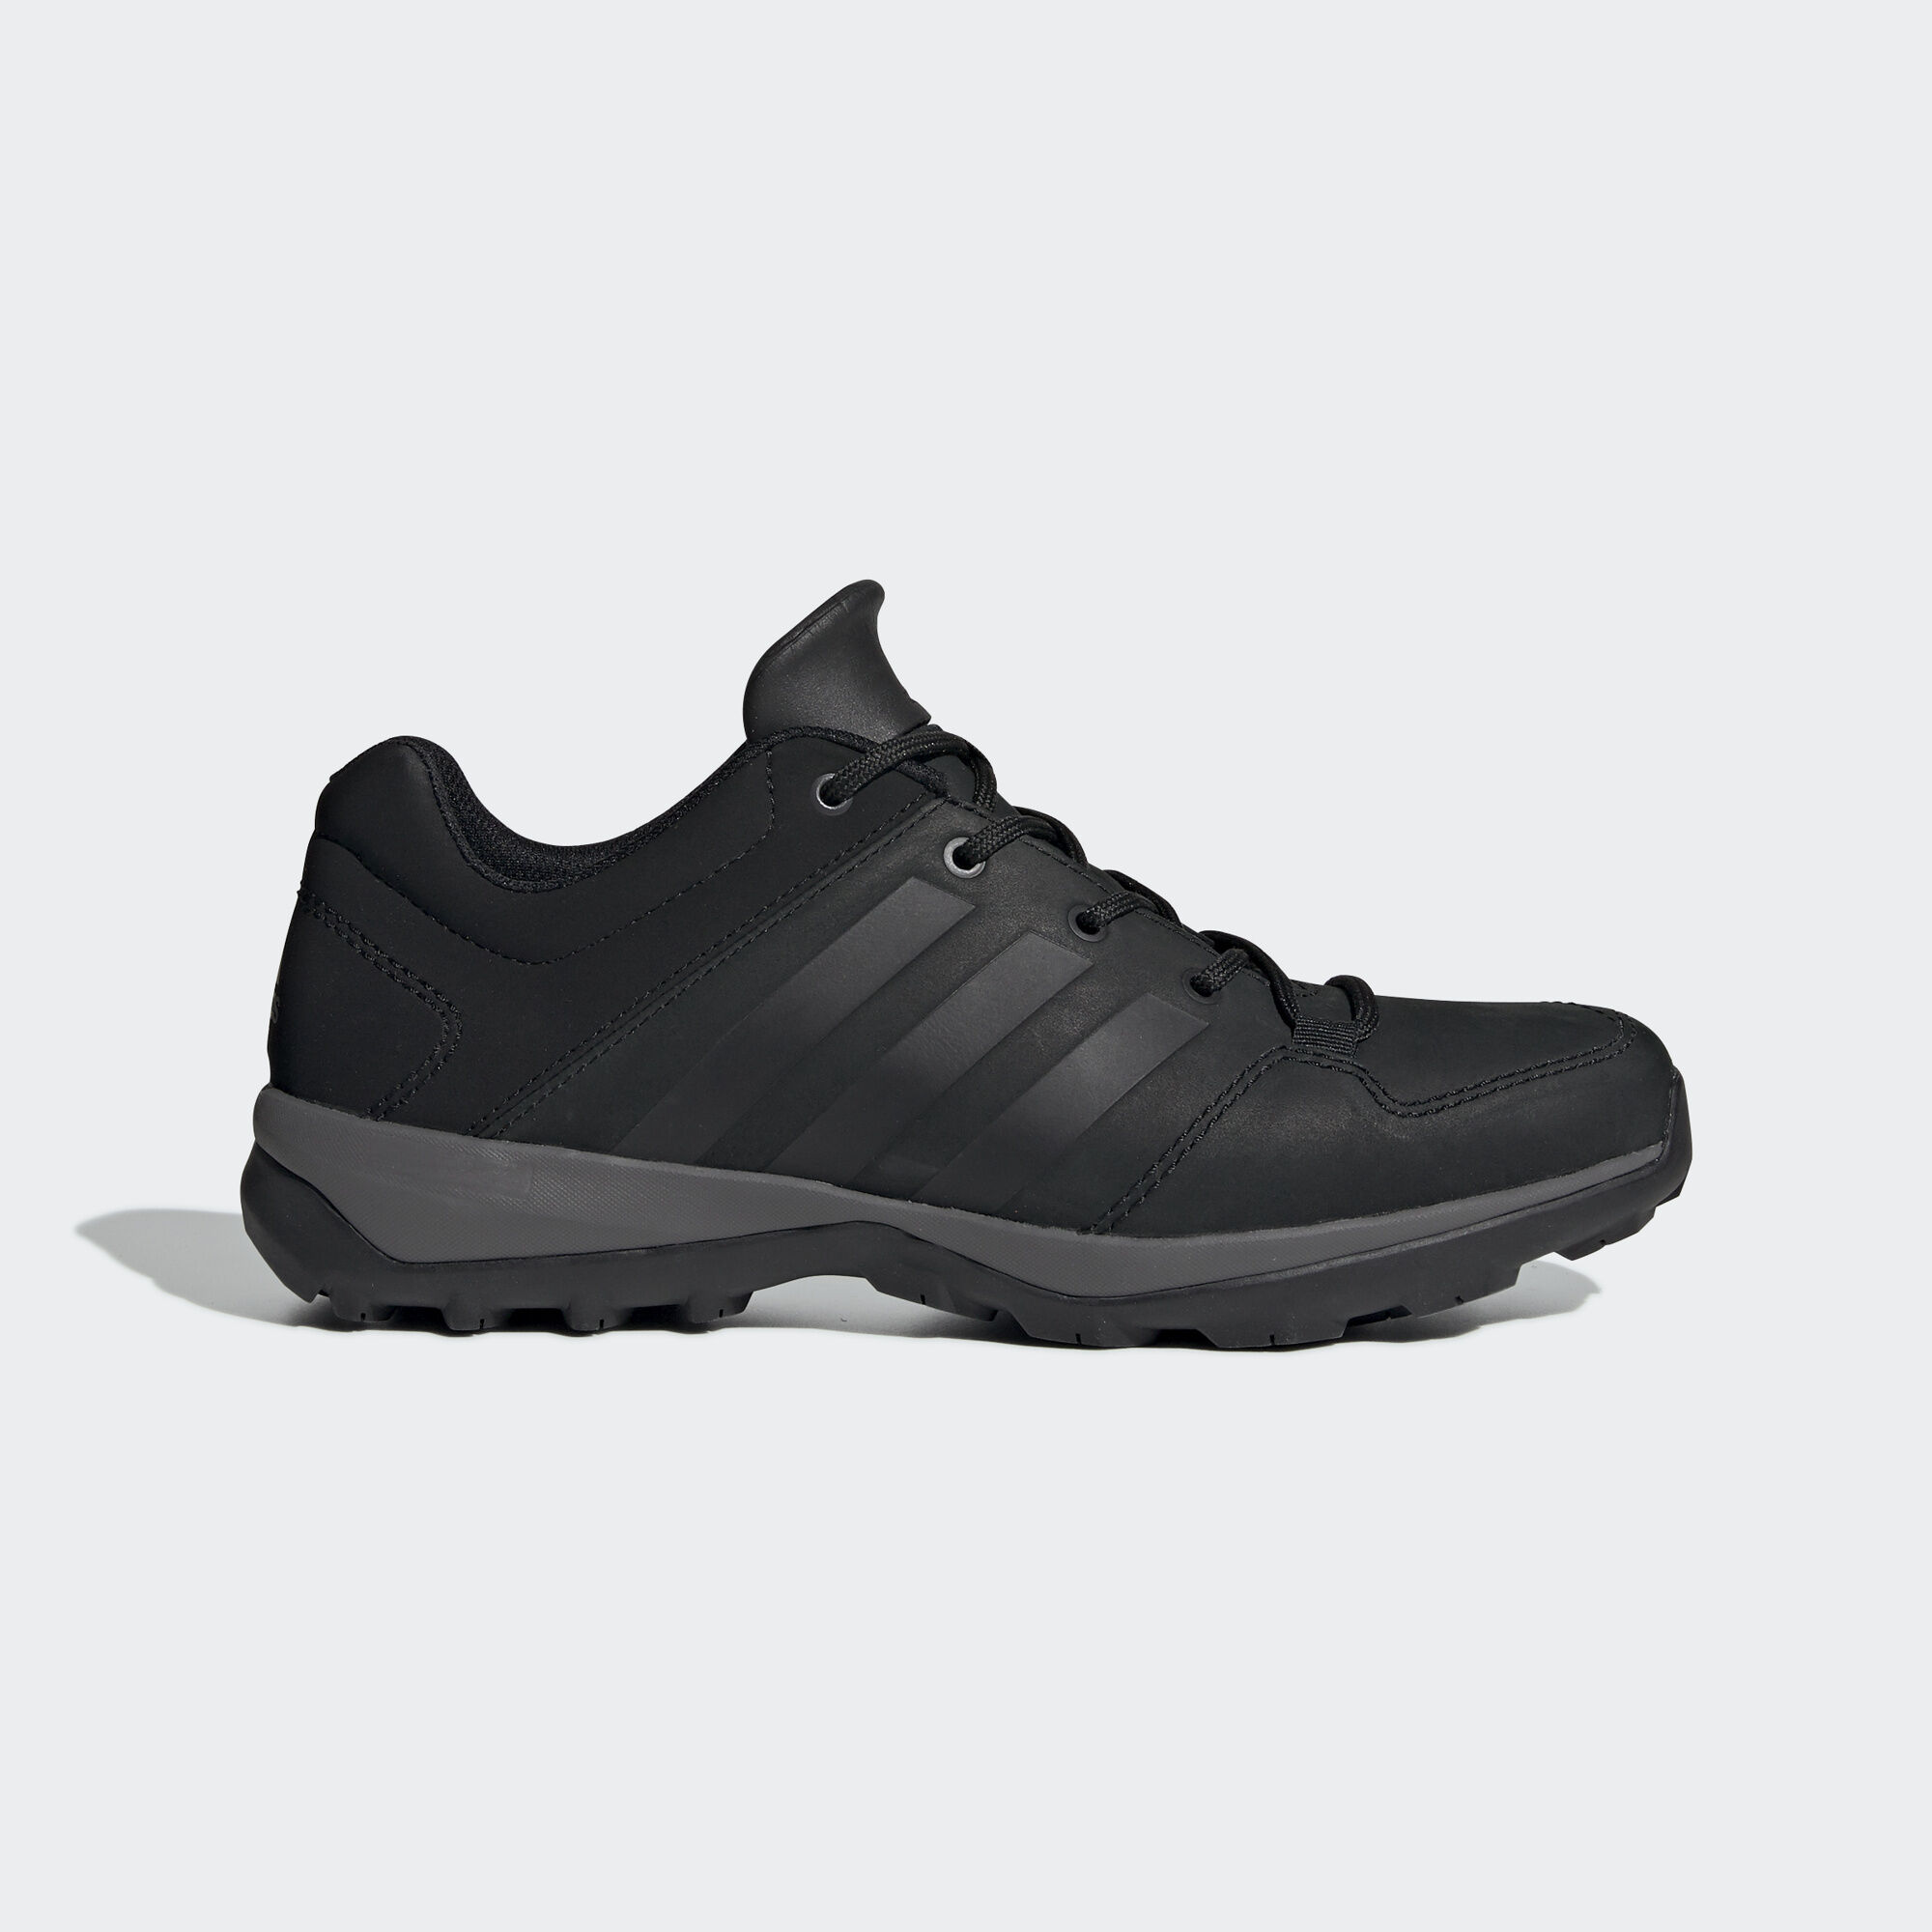 What Does Runs Small Mean In Shoes